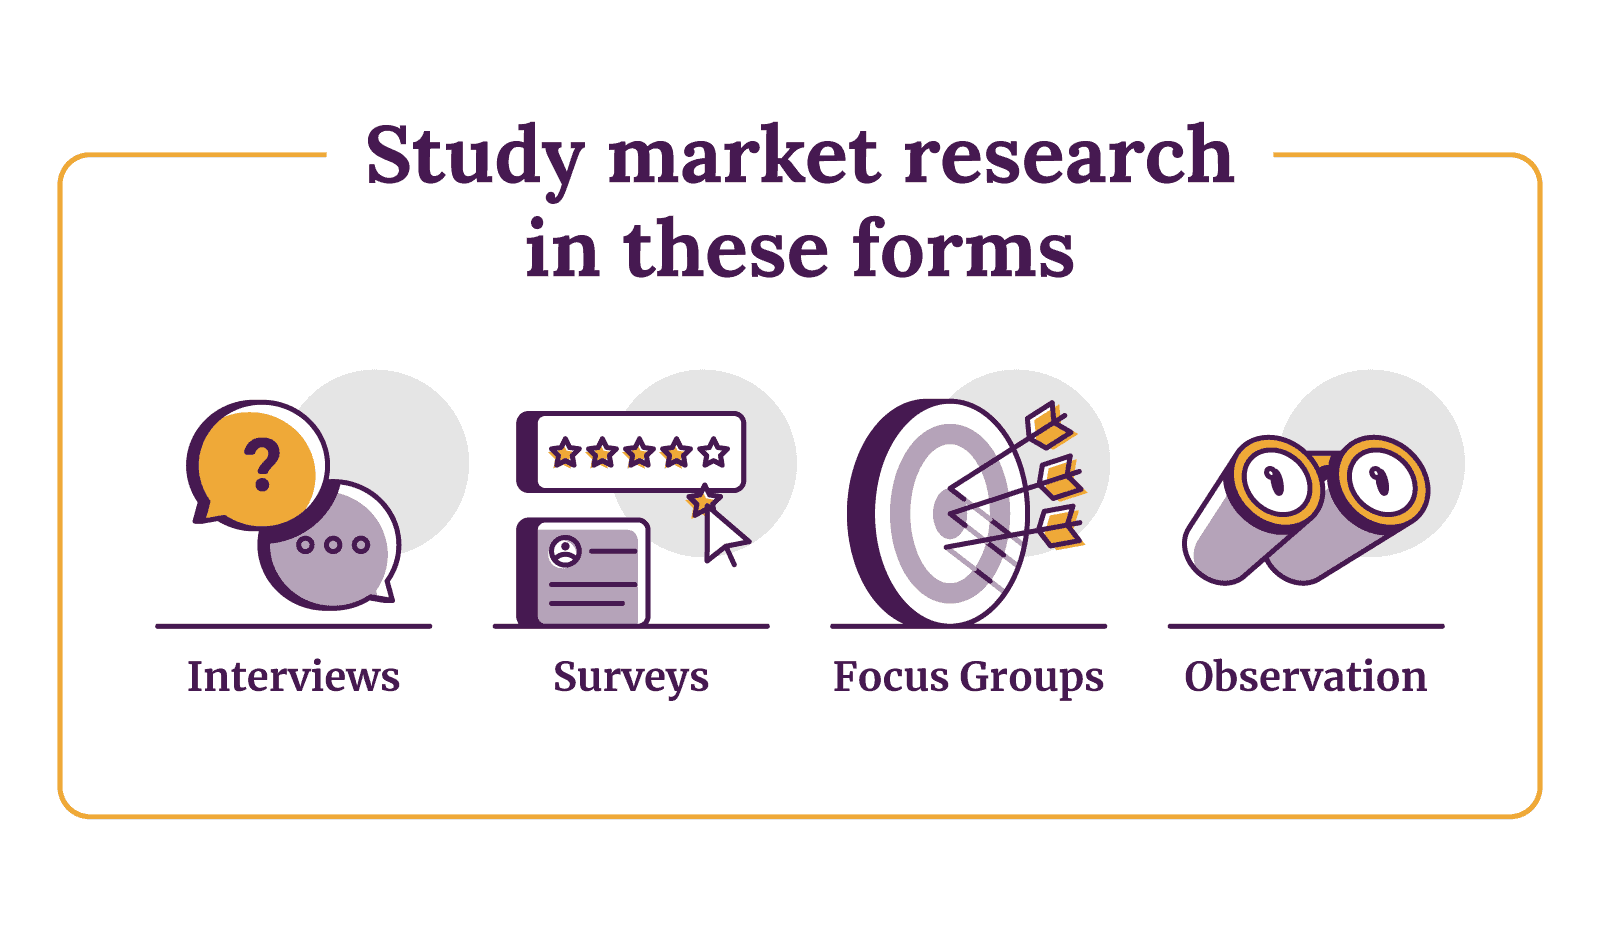 Study market research in these forms: interviews, surveys, focus groups and observation